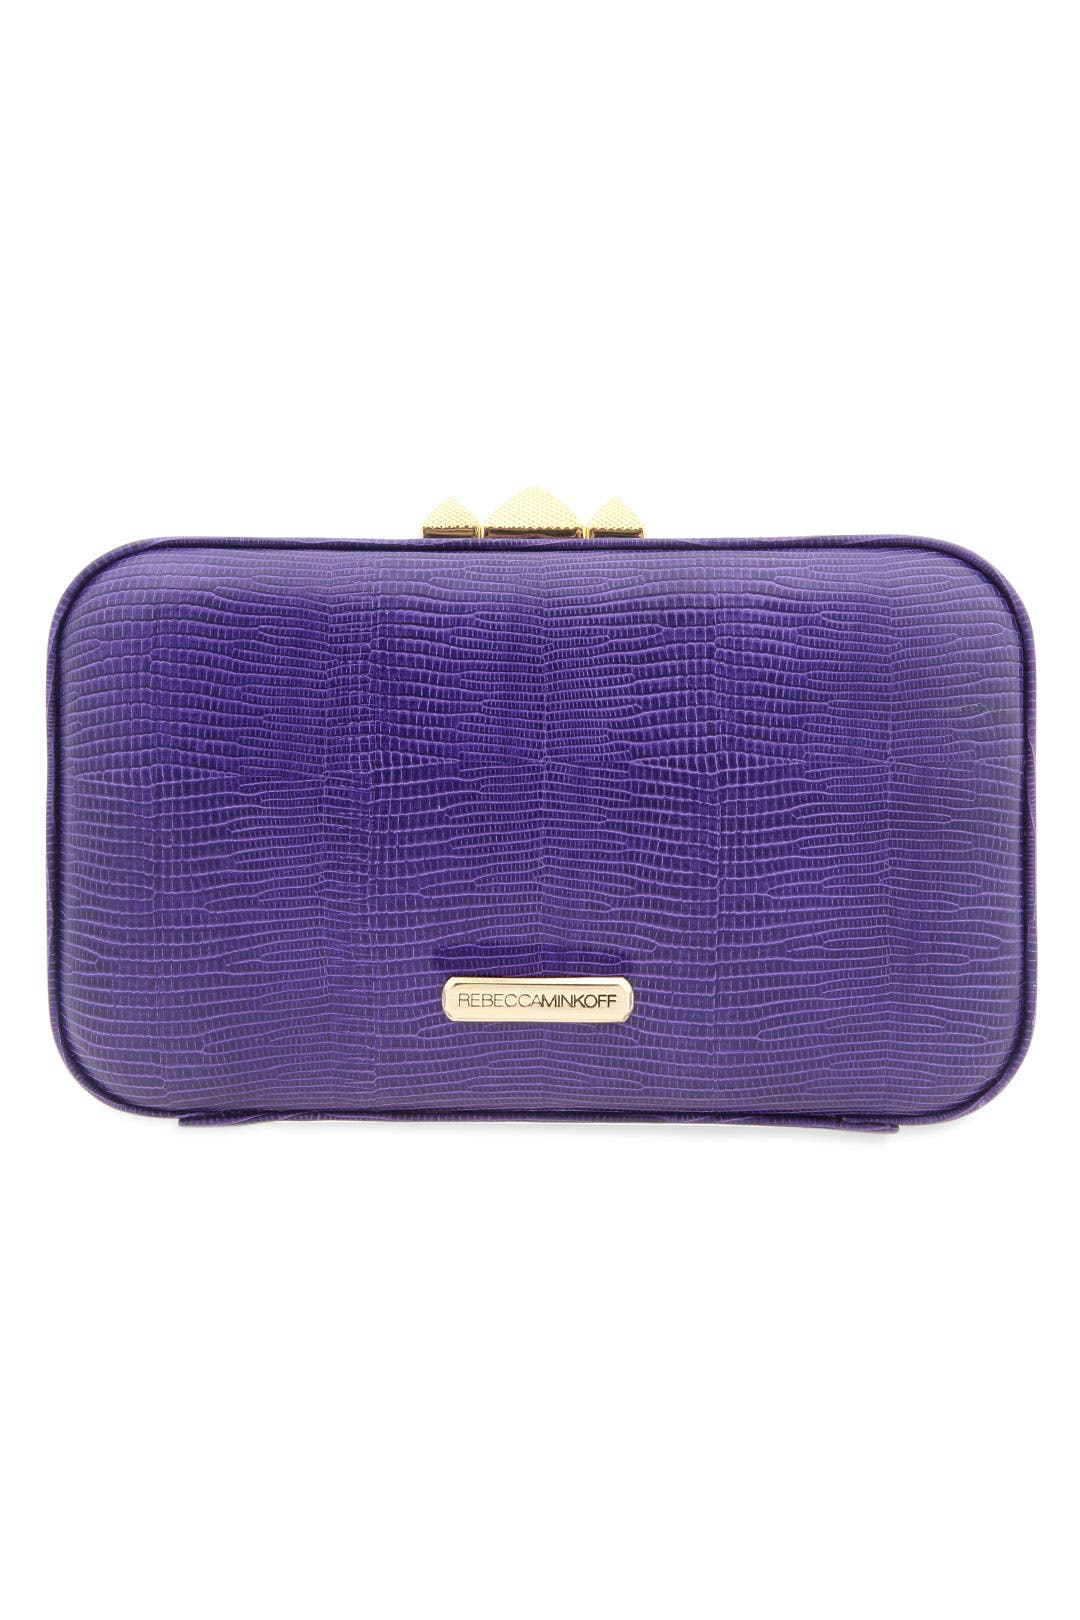 Step and Repeat Clutch by Rebecca Minkoff Handbags